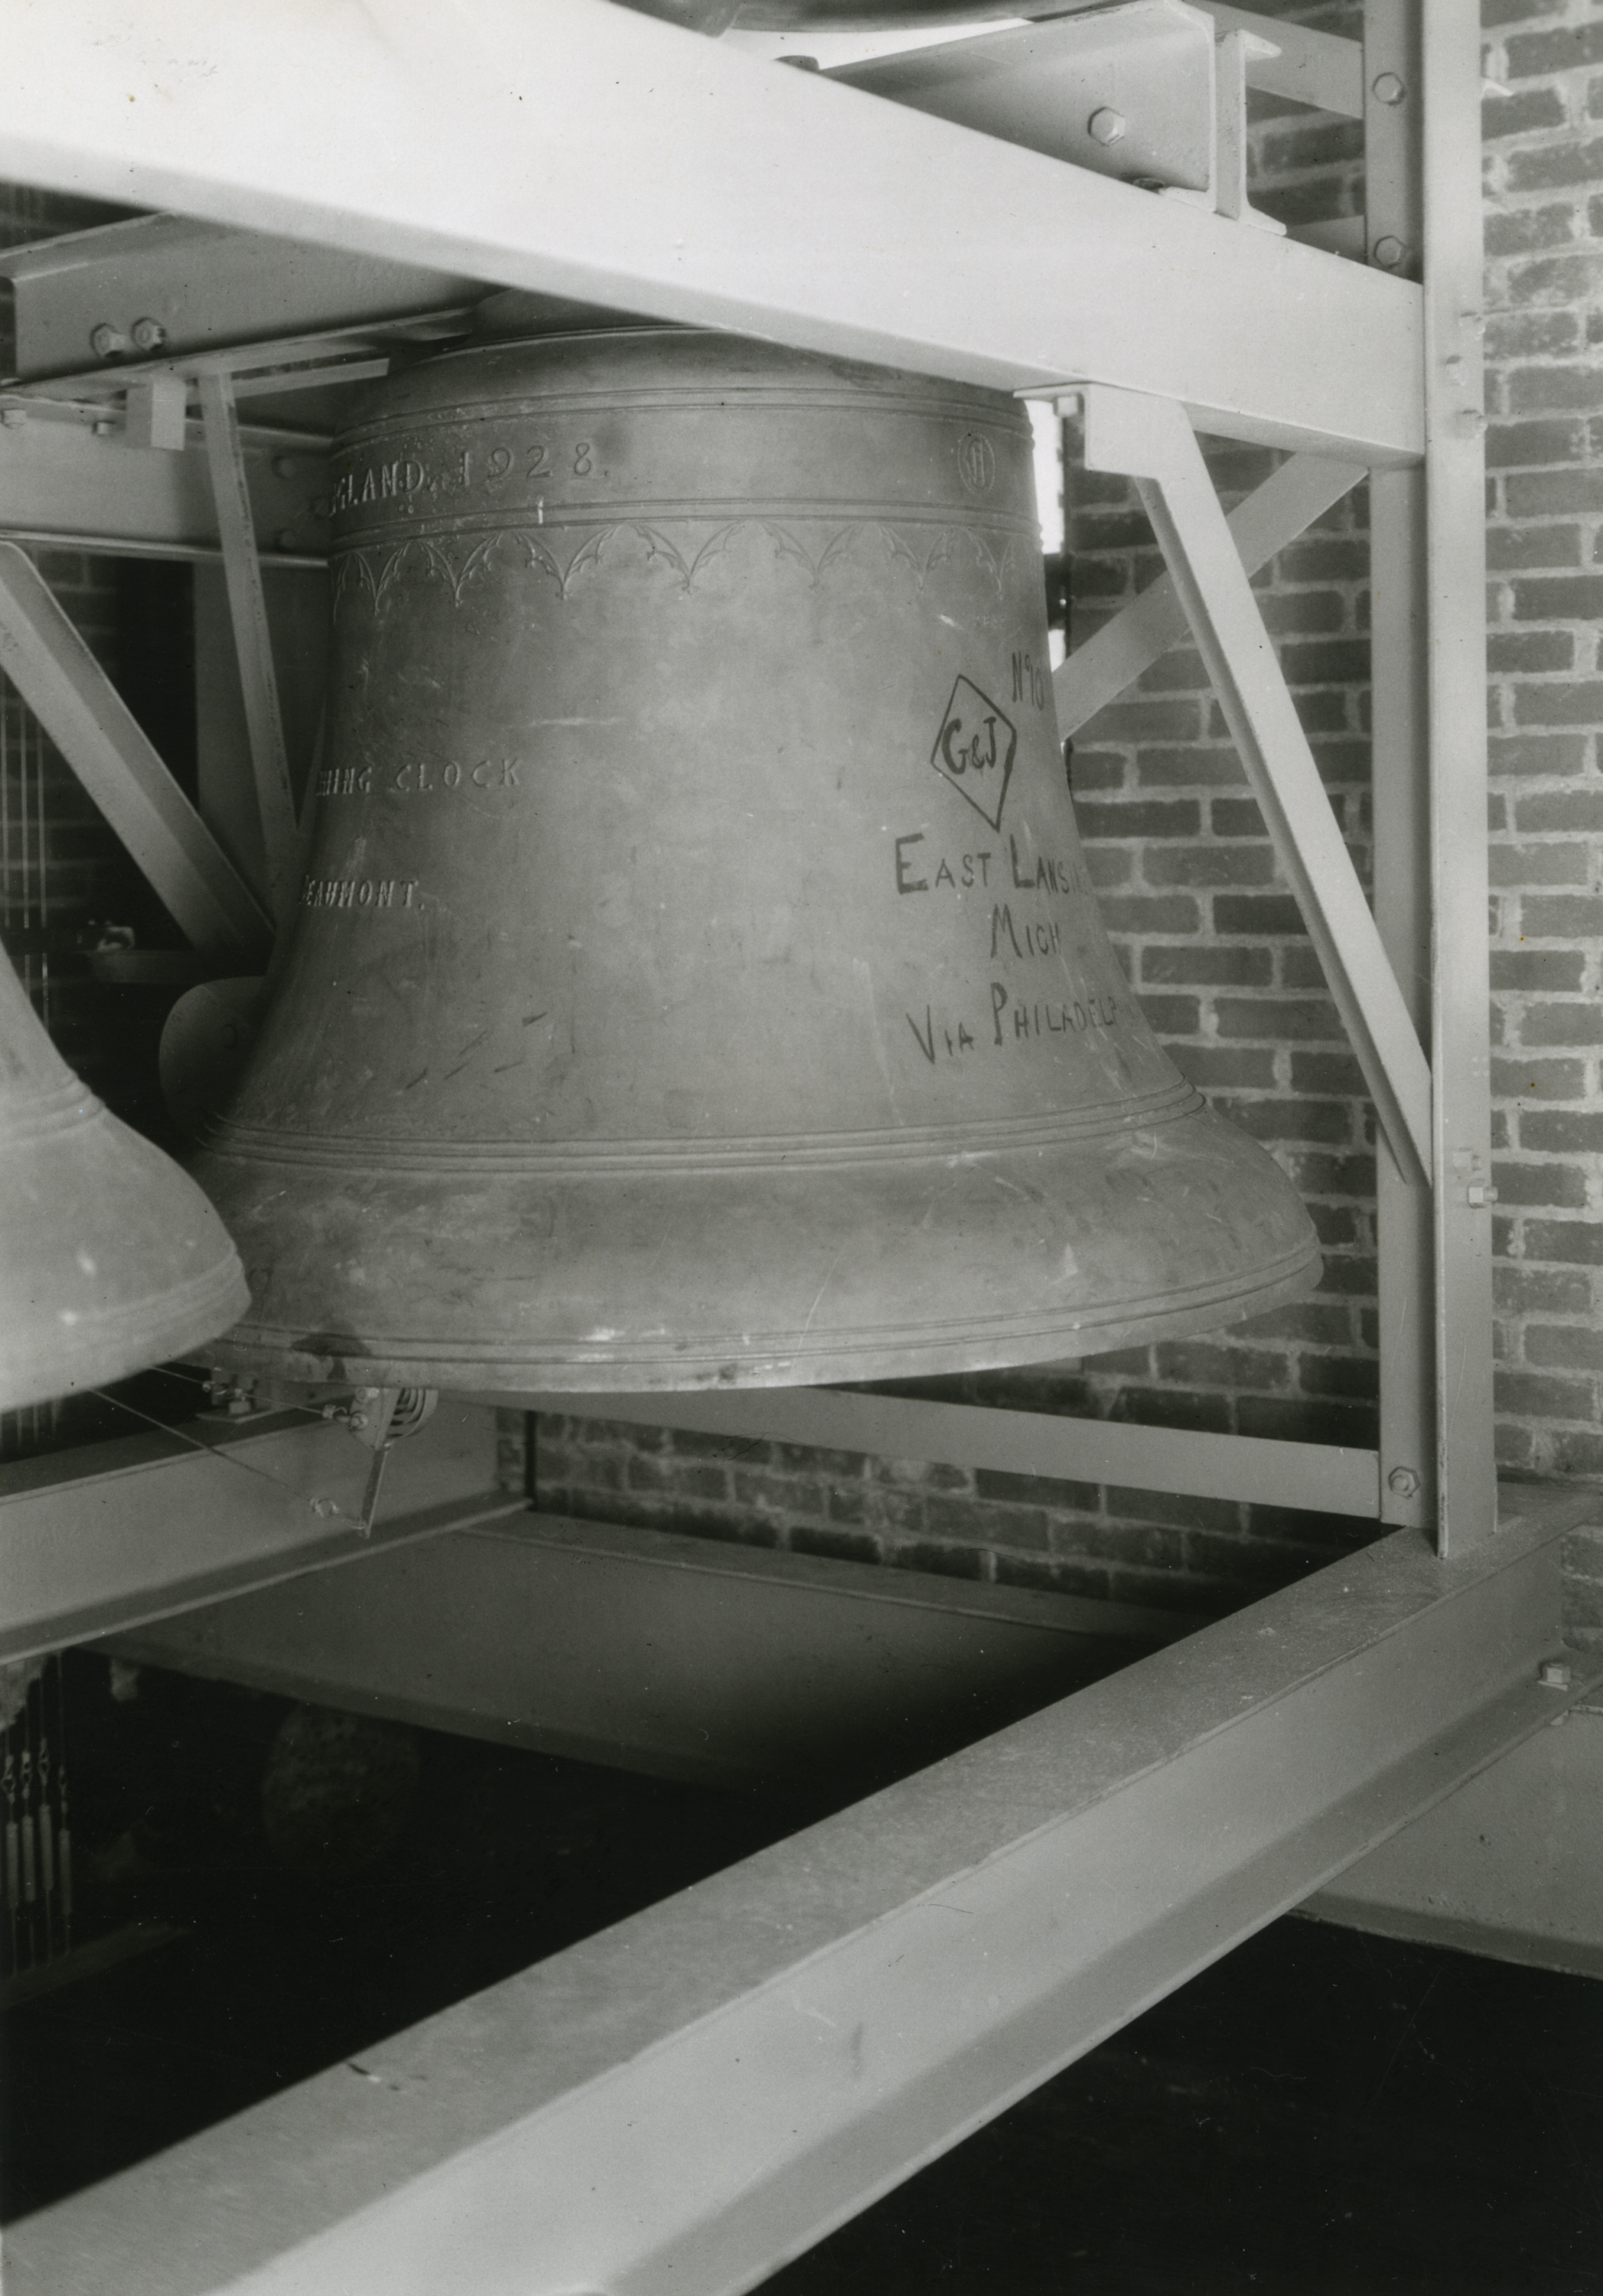 Beaumont Tower Bell, date unknown